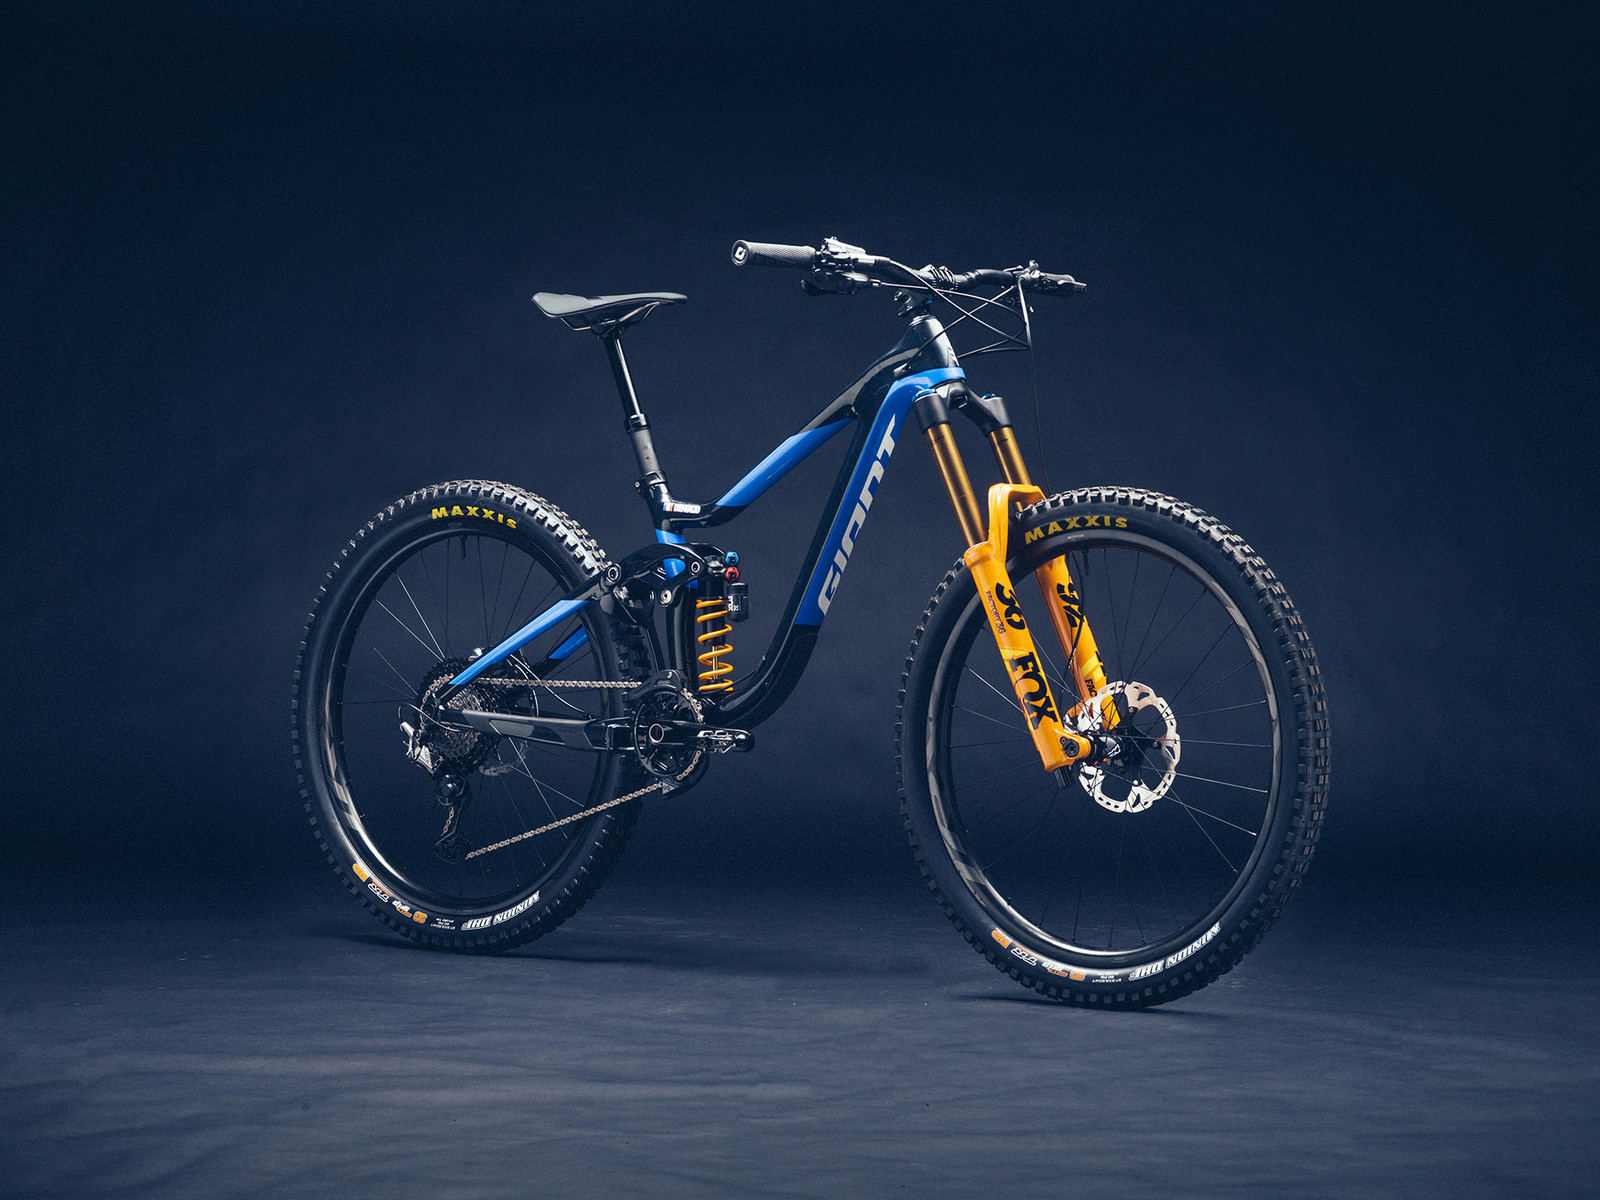 Deniaud will start his first season on the Giant Factory Off-Road Team racing the Reign Advanced bike with new FOX suspension products. Deniaud and his enduro teammates will also be developing and testing new enduro-focused bikes and gear throughout the year.